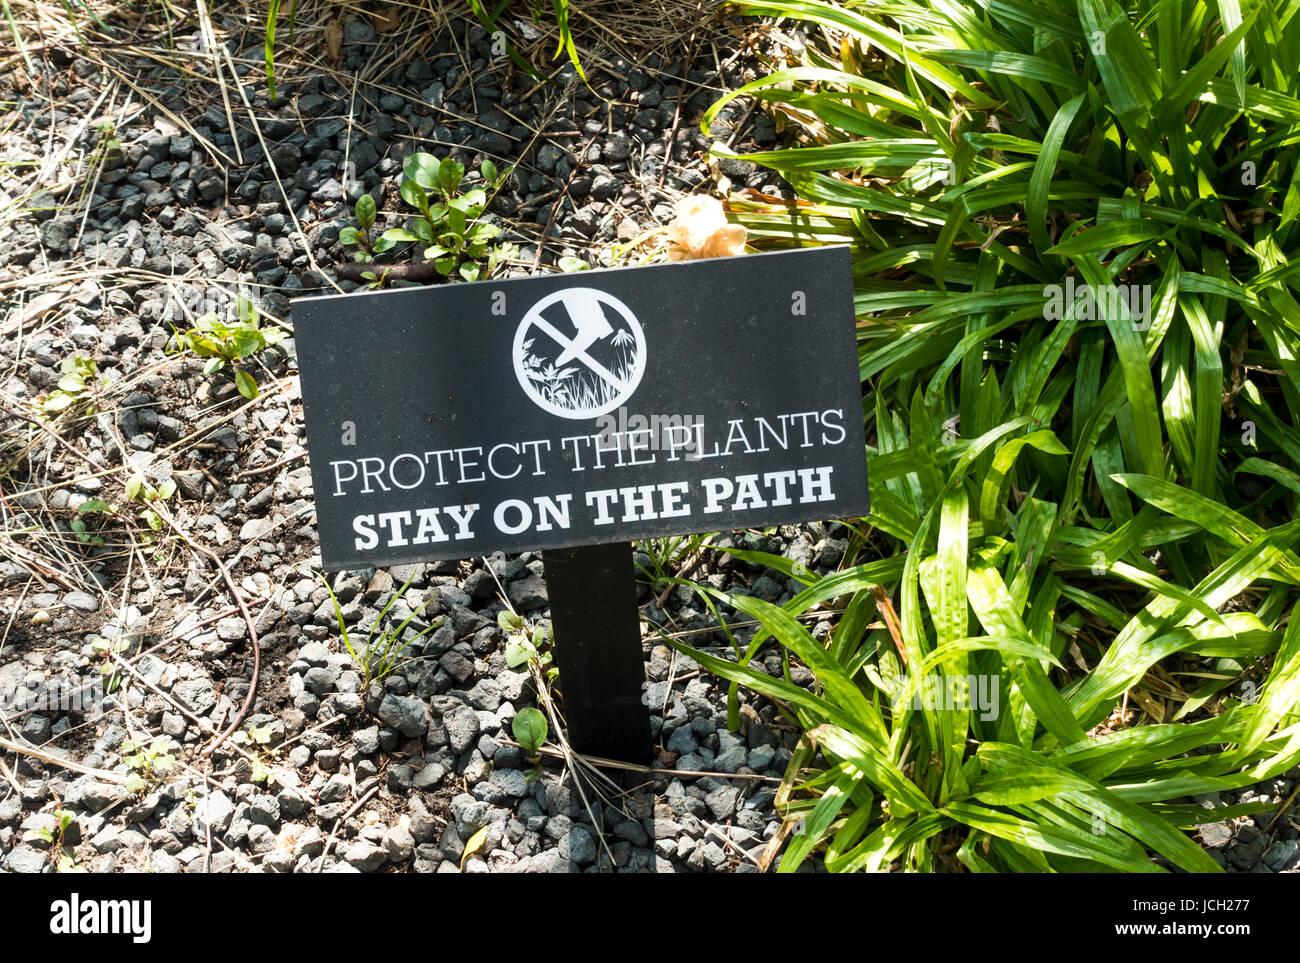 A sign with a printed warning and request to protect the plants and stay on the path in the High Line Park in New - Stock Image